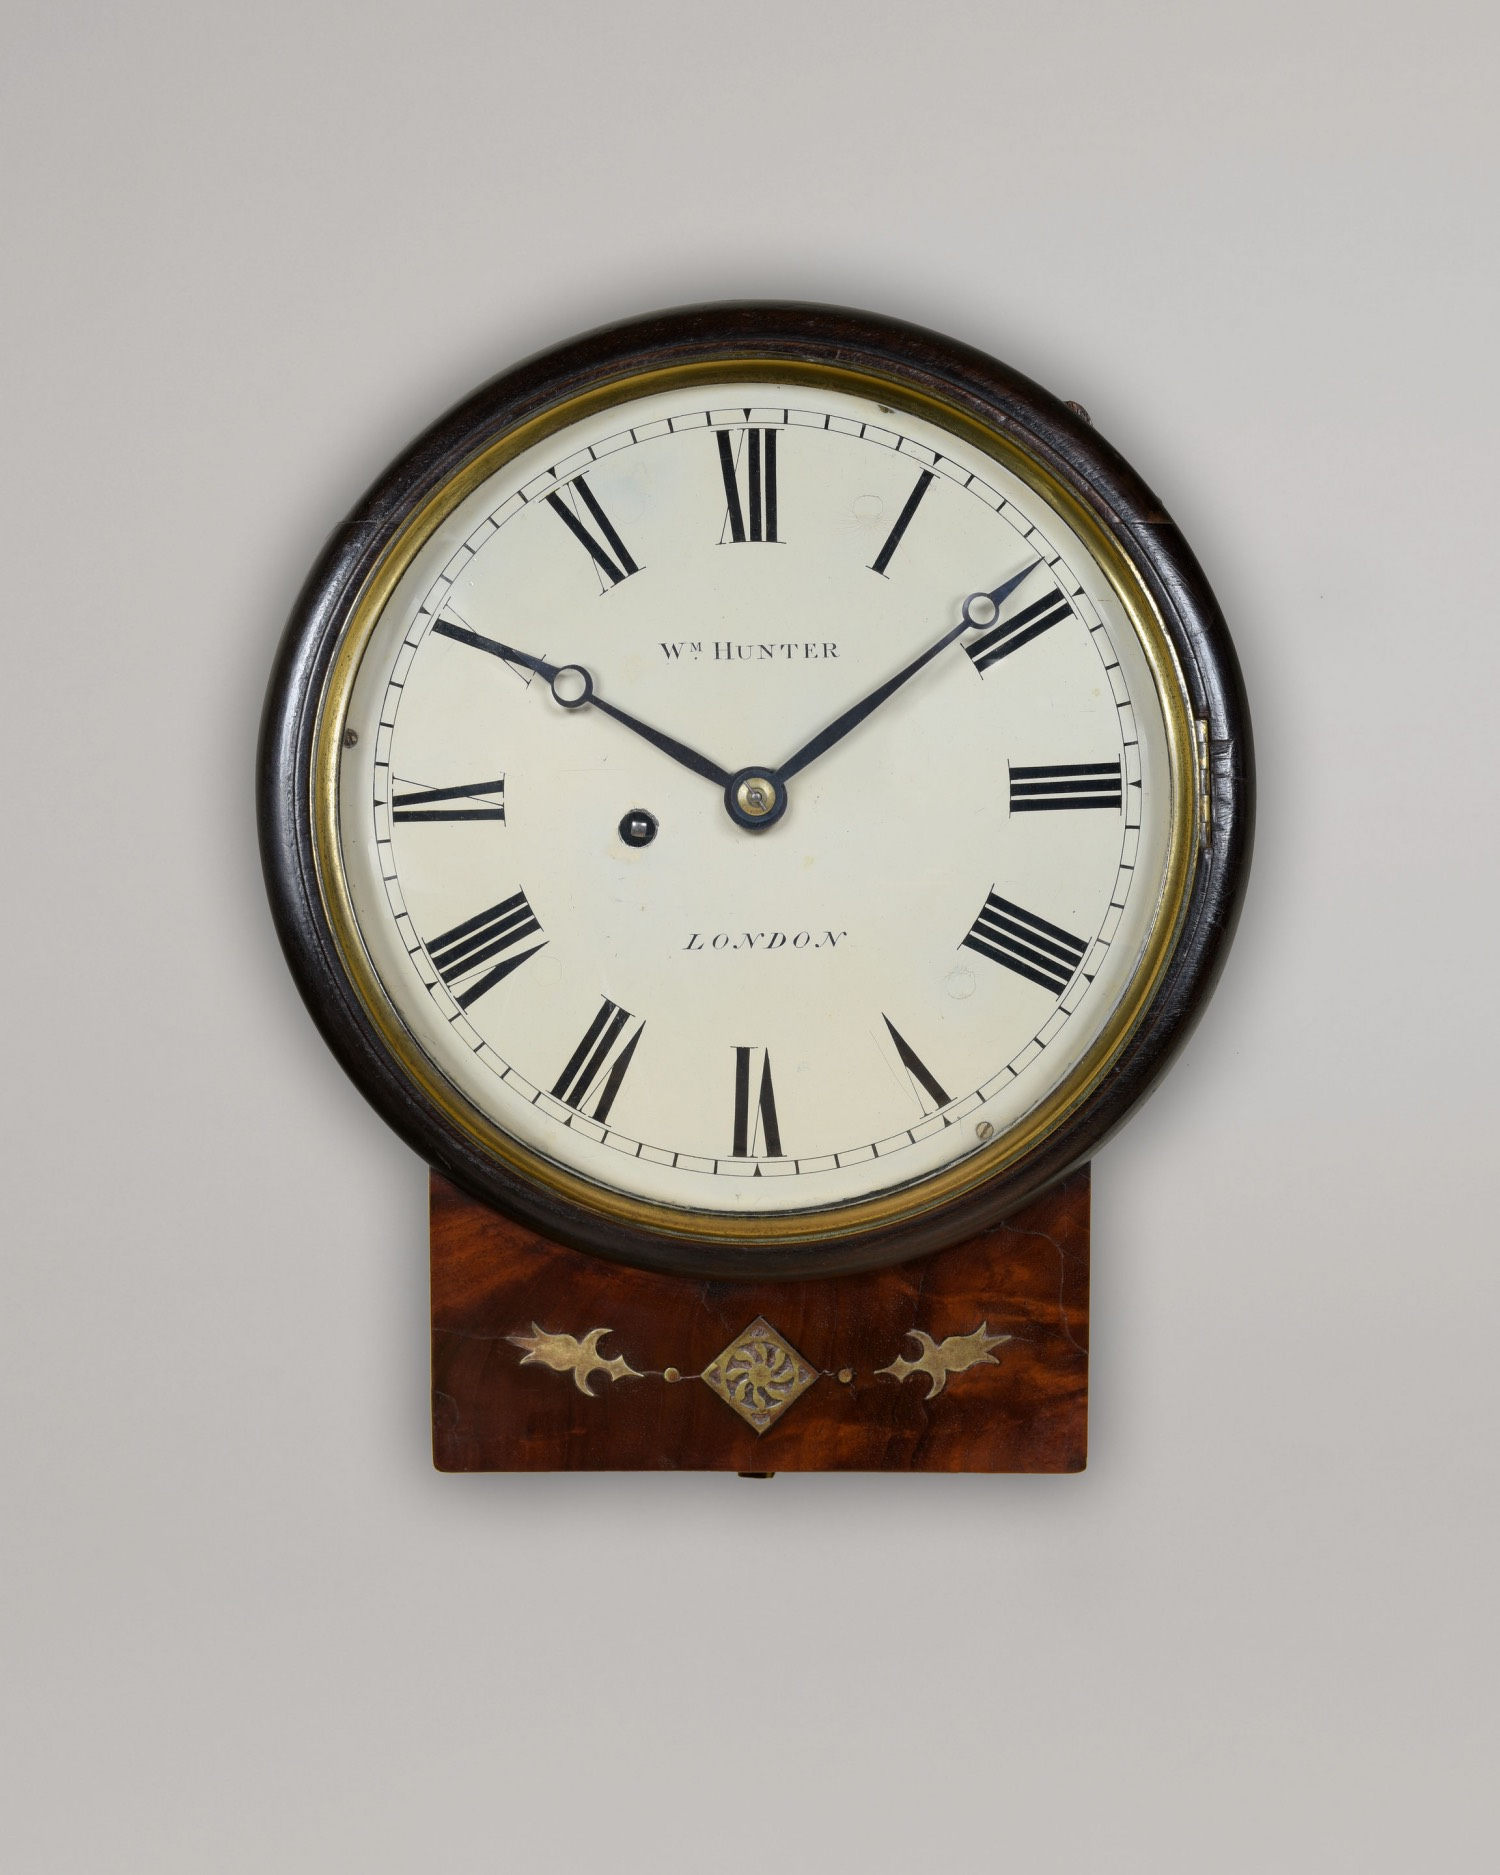 WM. HUNTER. A FINE EARLY 19TH CENTURY DROPBOX WALL TIMEPIECE